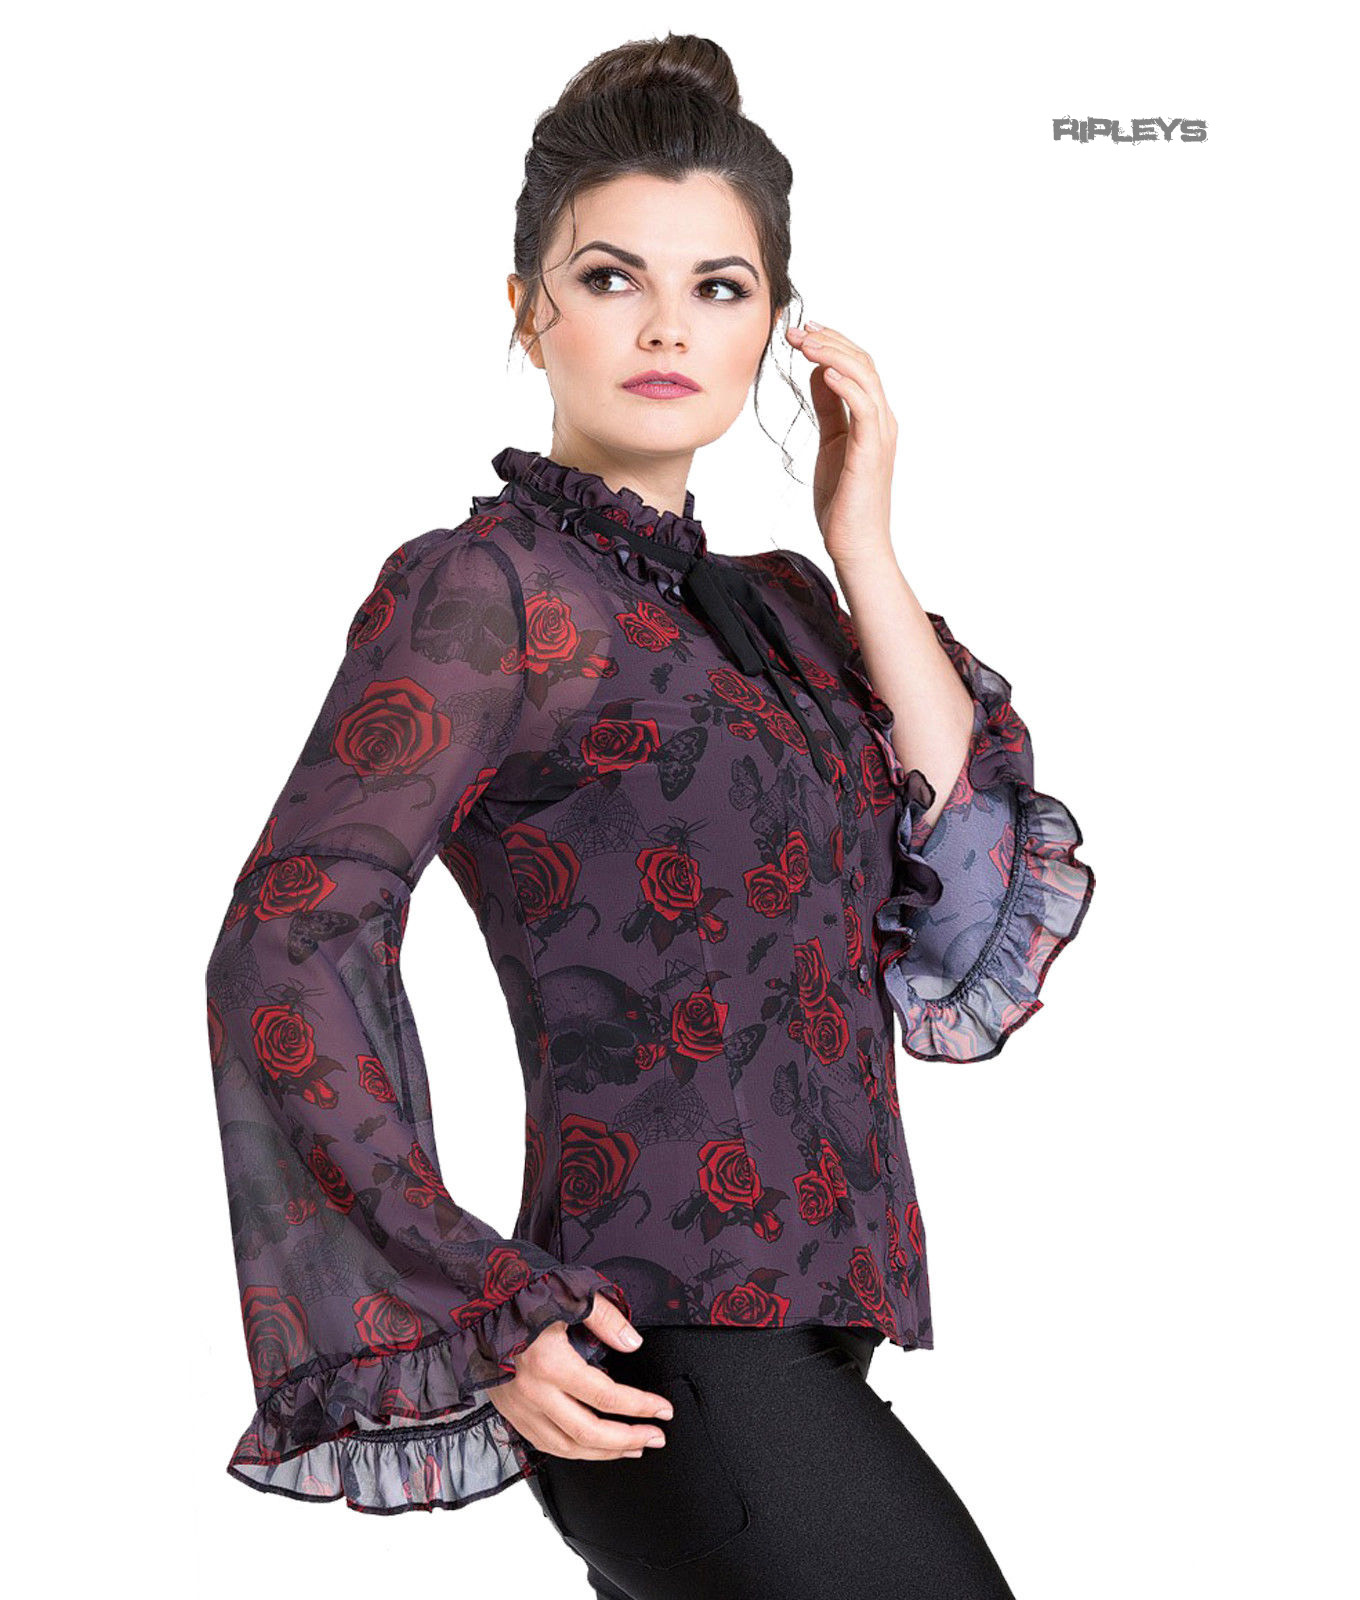 Hell-Bunny-Chiffon-Shirt-Top-Gothic-Floaty-BUGS-amp-ROSES-Purple-Blouse-All-Sizes thumbnail 10